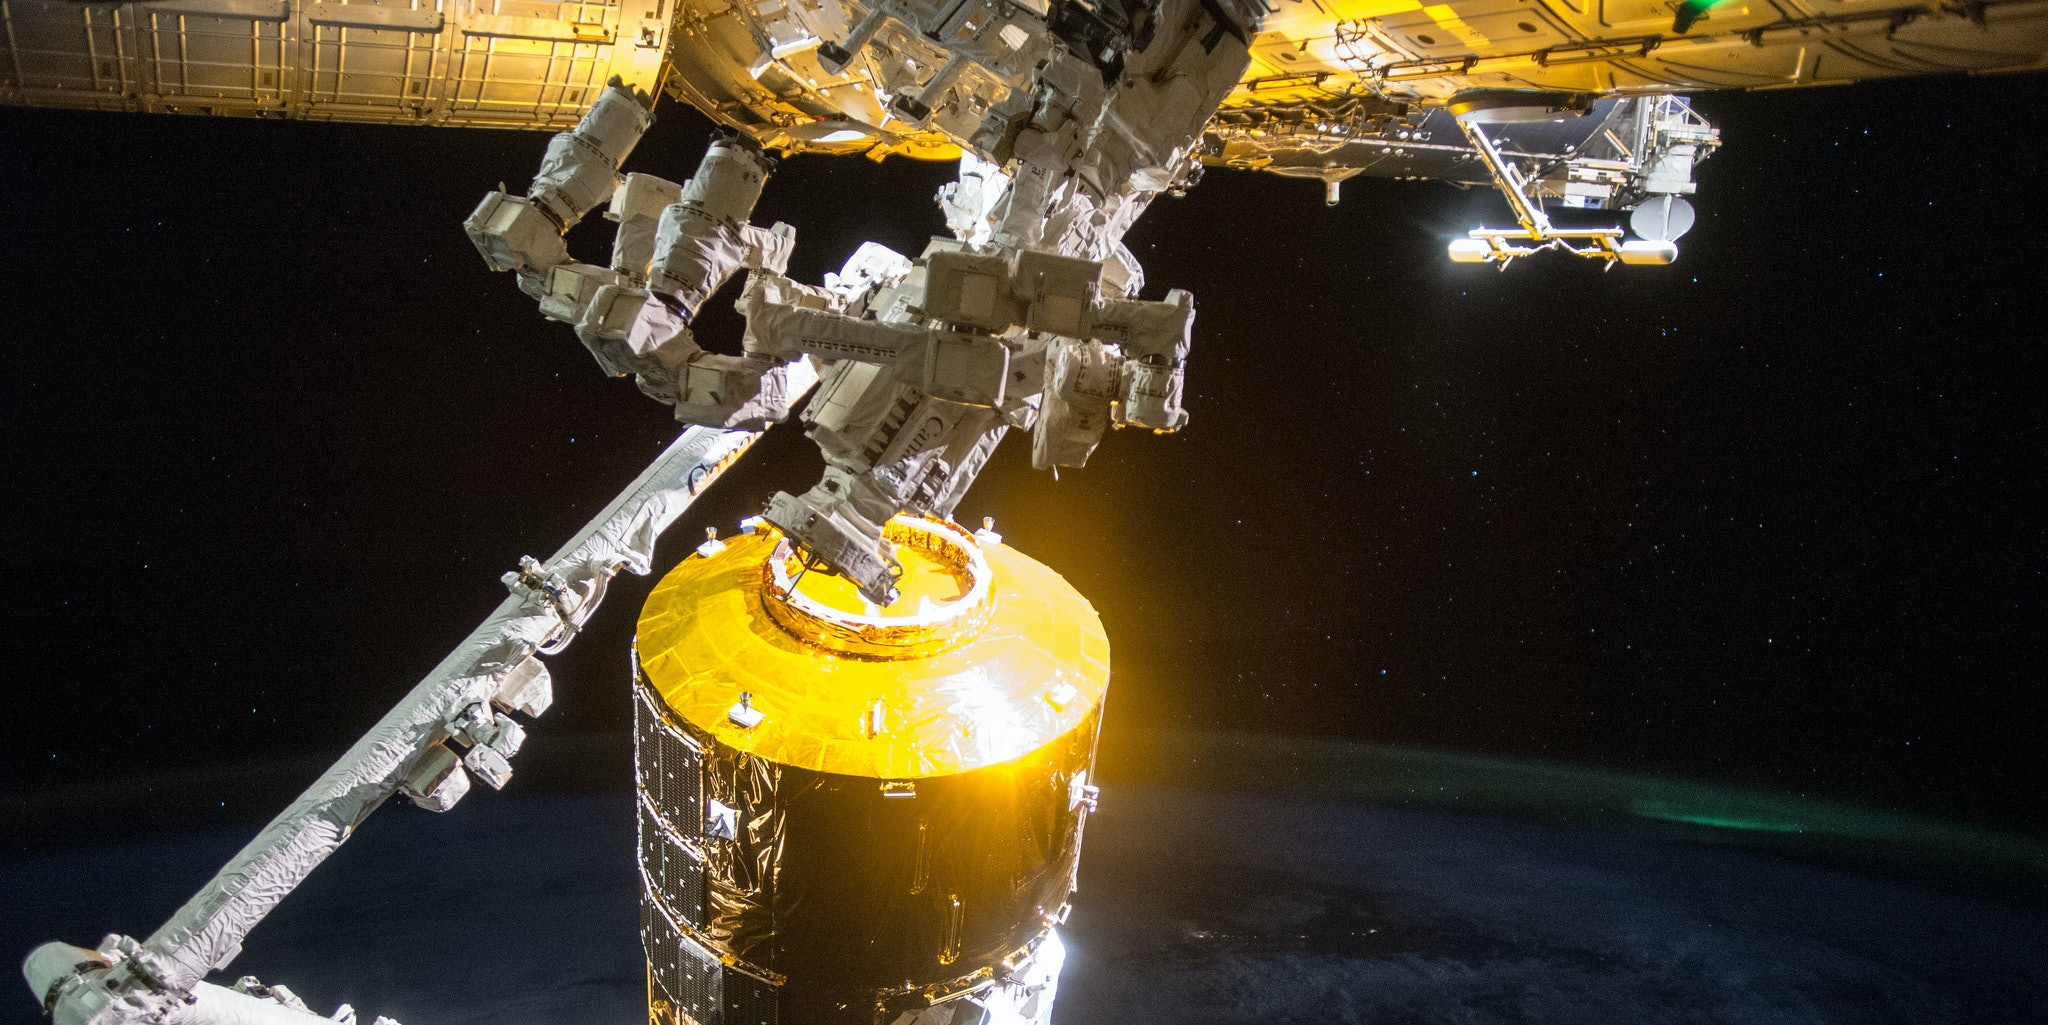 The HTV-5, which after supplying the ISS was sent to burn up in Earth's atmosphere. HTV-6 will do the same as soon as its mission is complete.